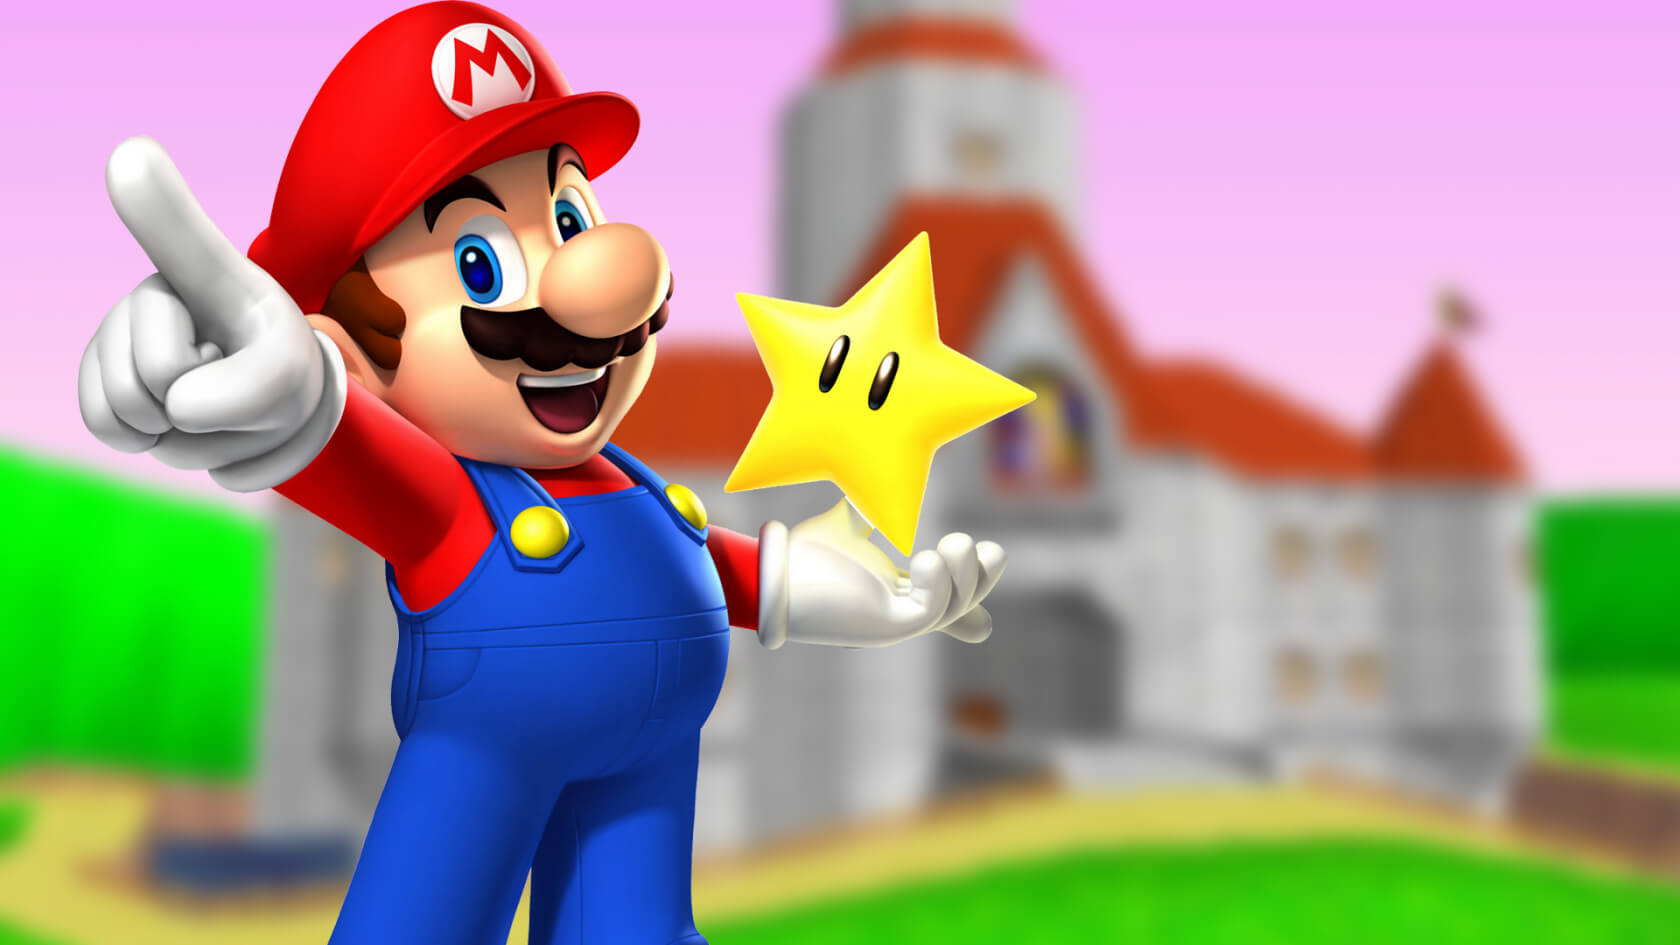 Super Mario 64 Online is a romhack that allows up to 24 people to